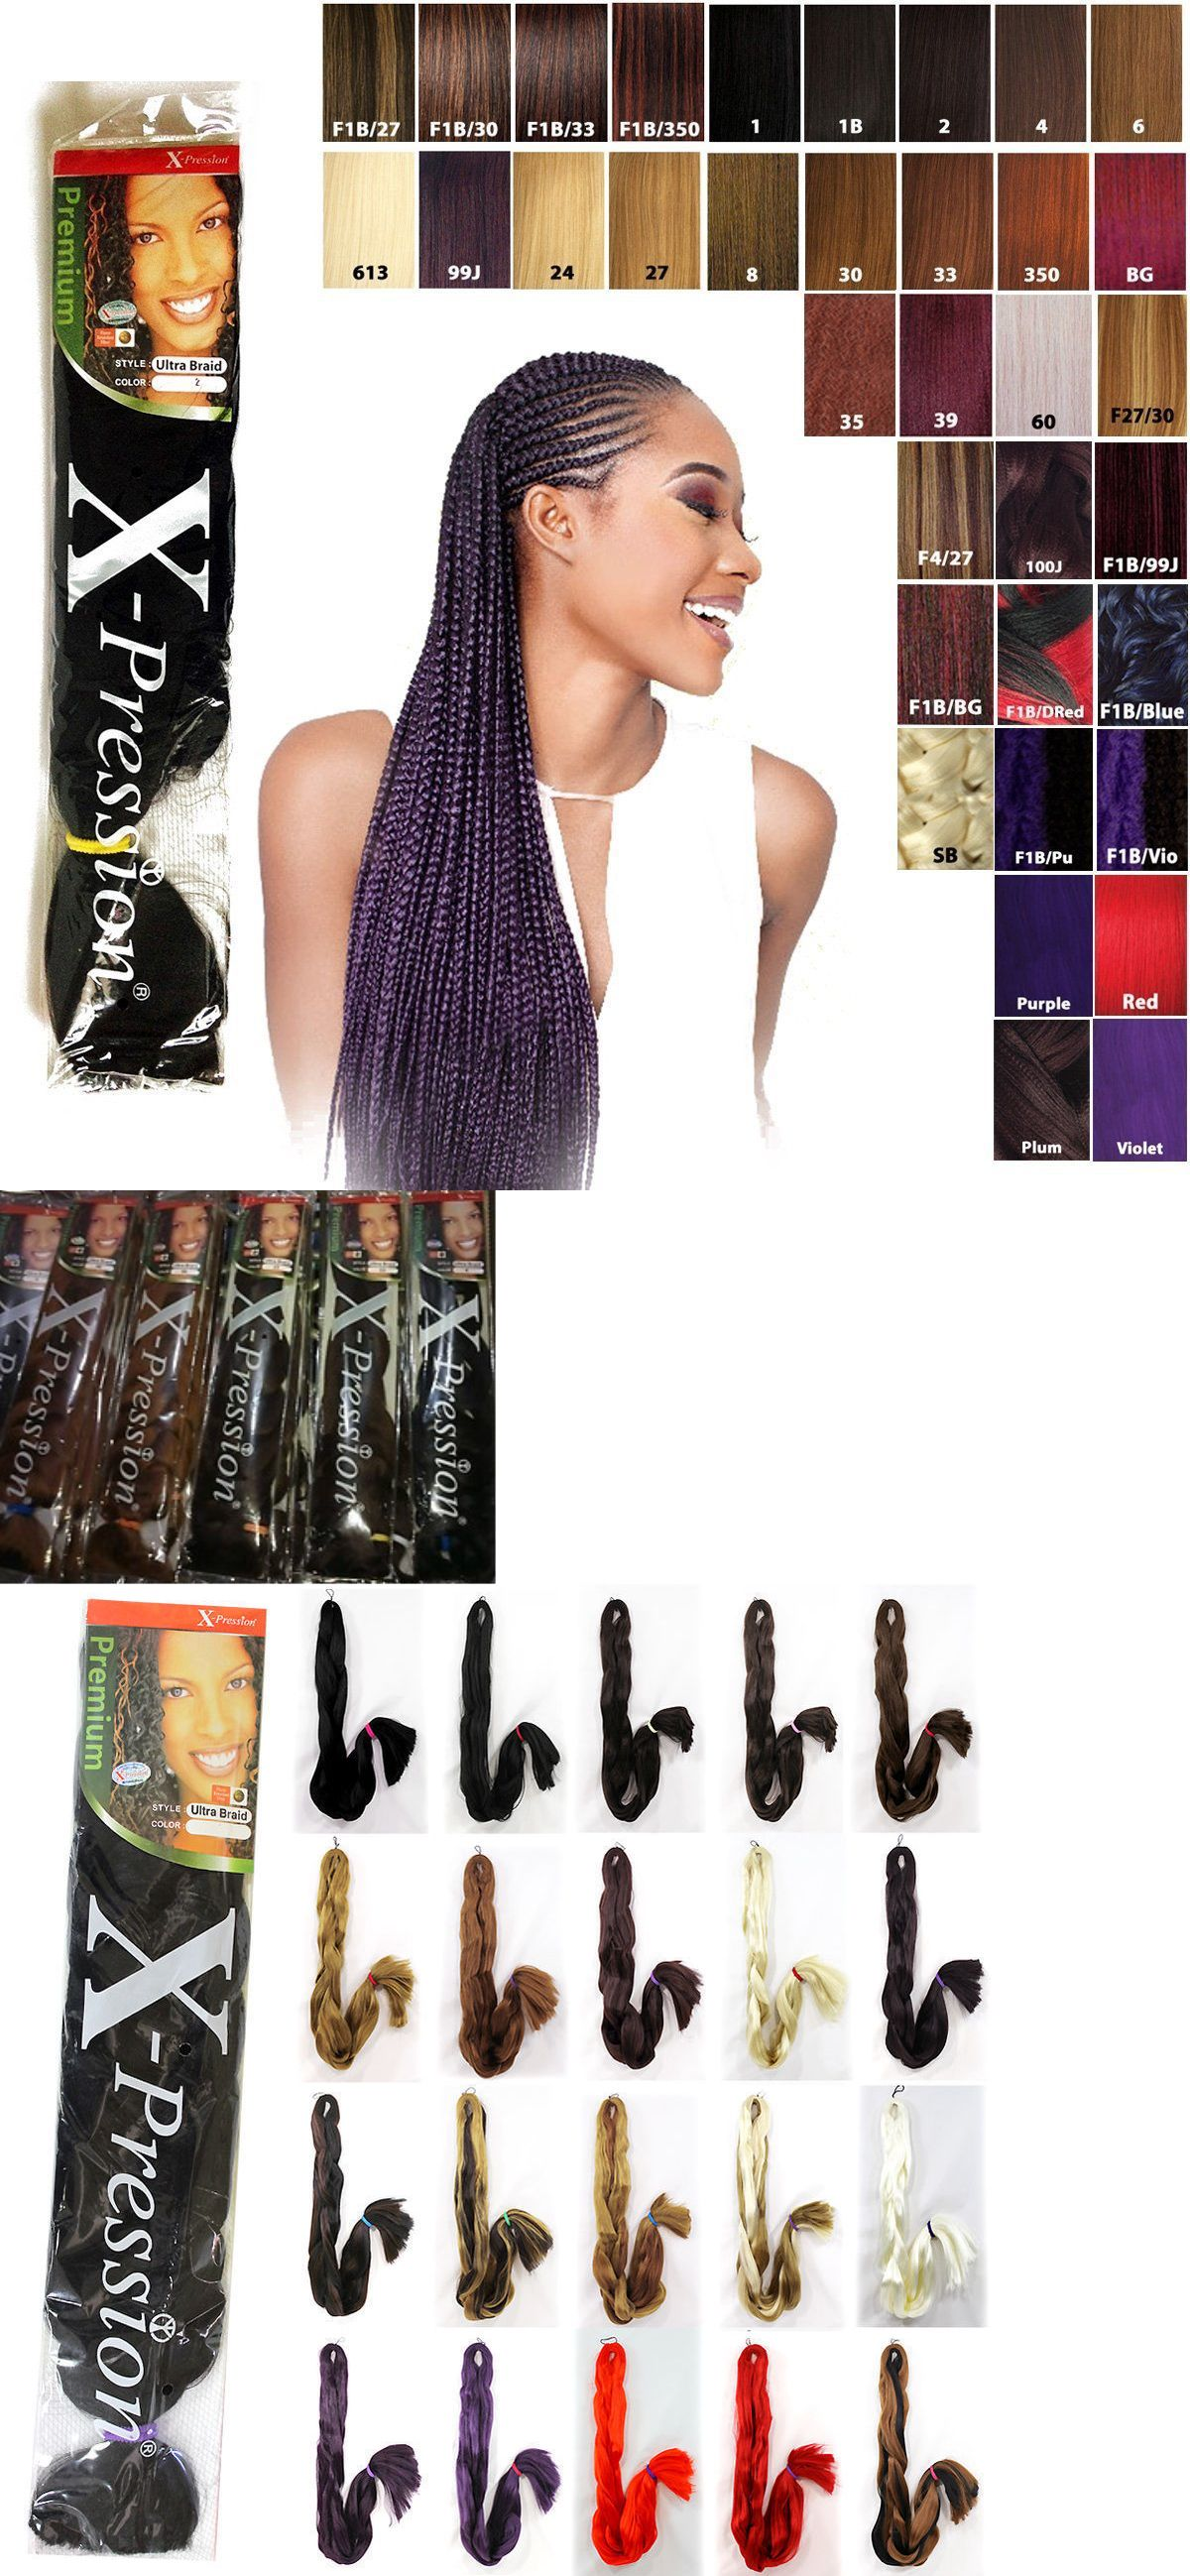 5 Packs X Pression Xpression Expression 82 Ultra Braid Hair 2 3 Day